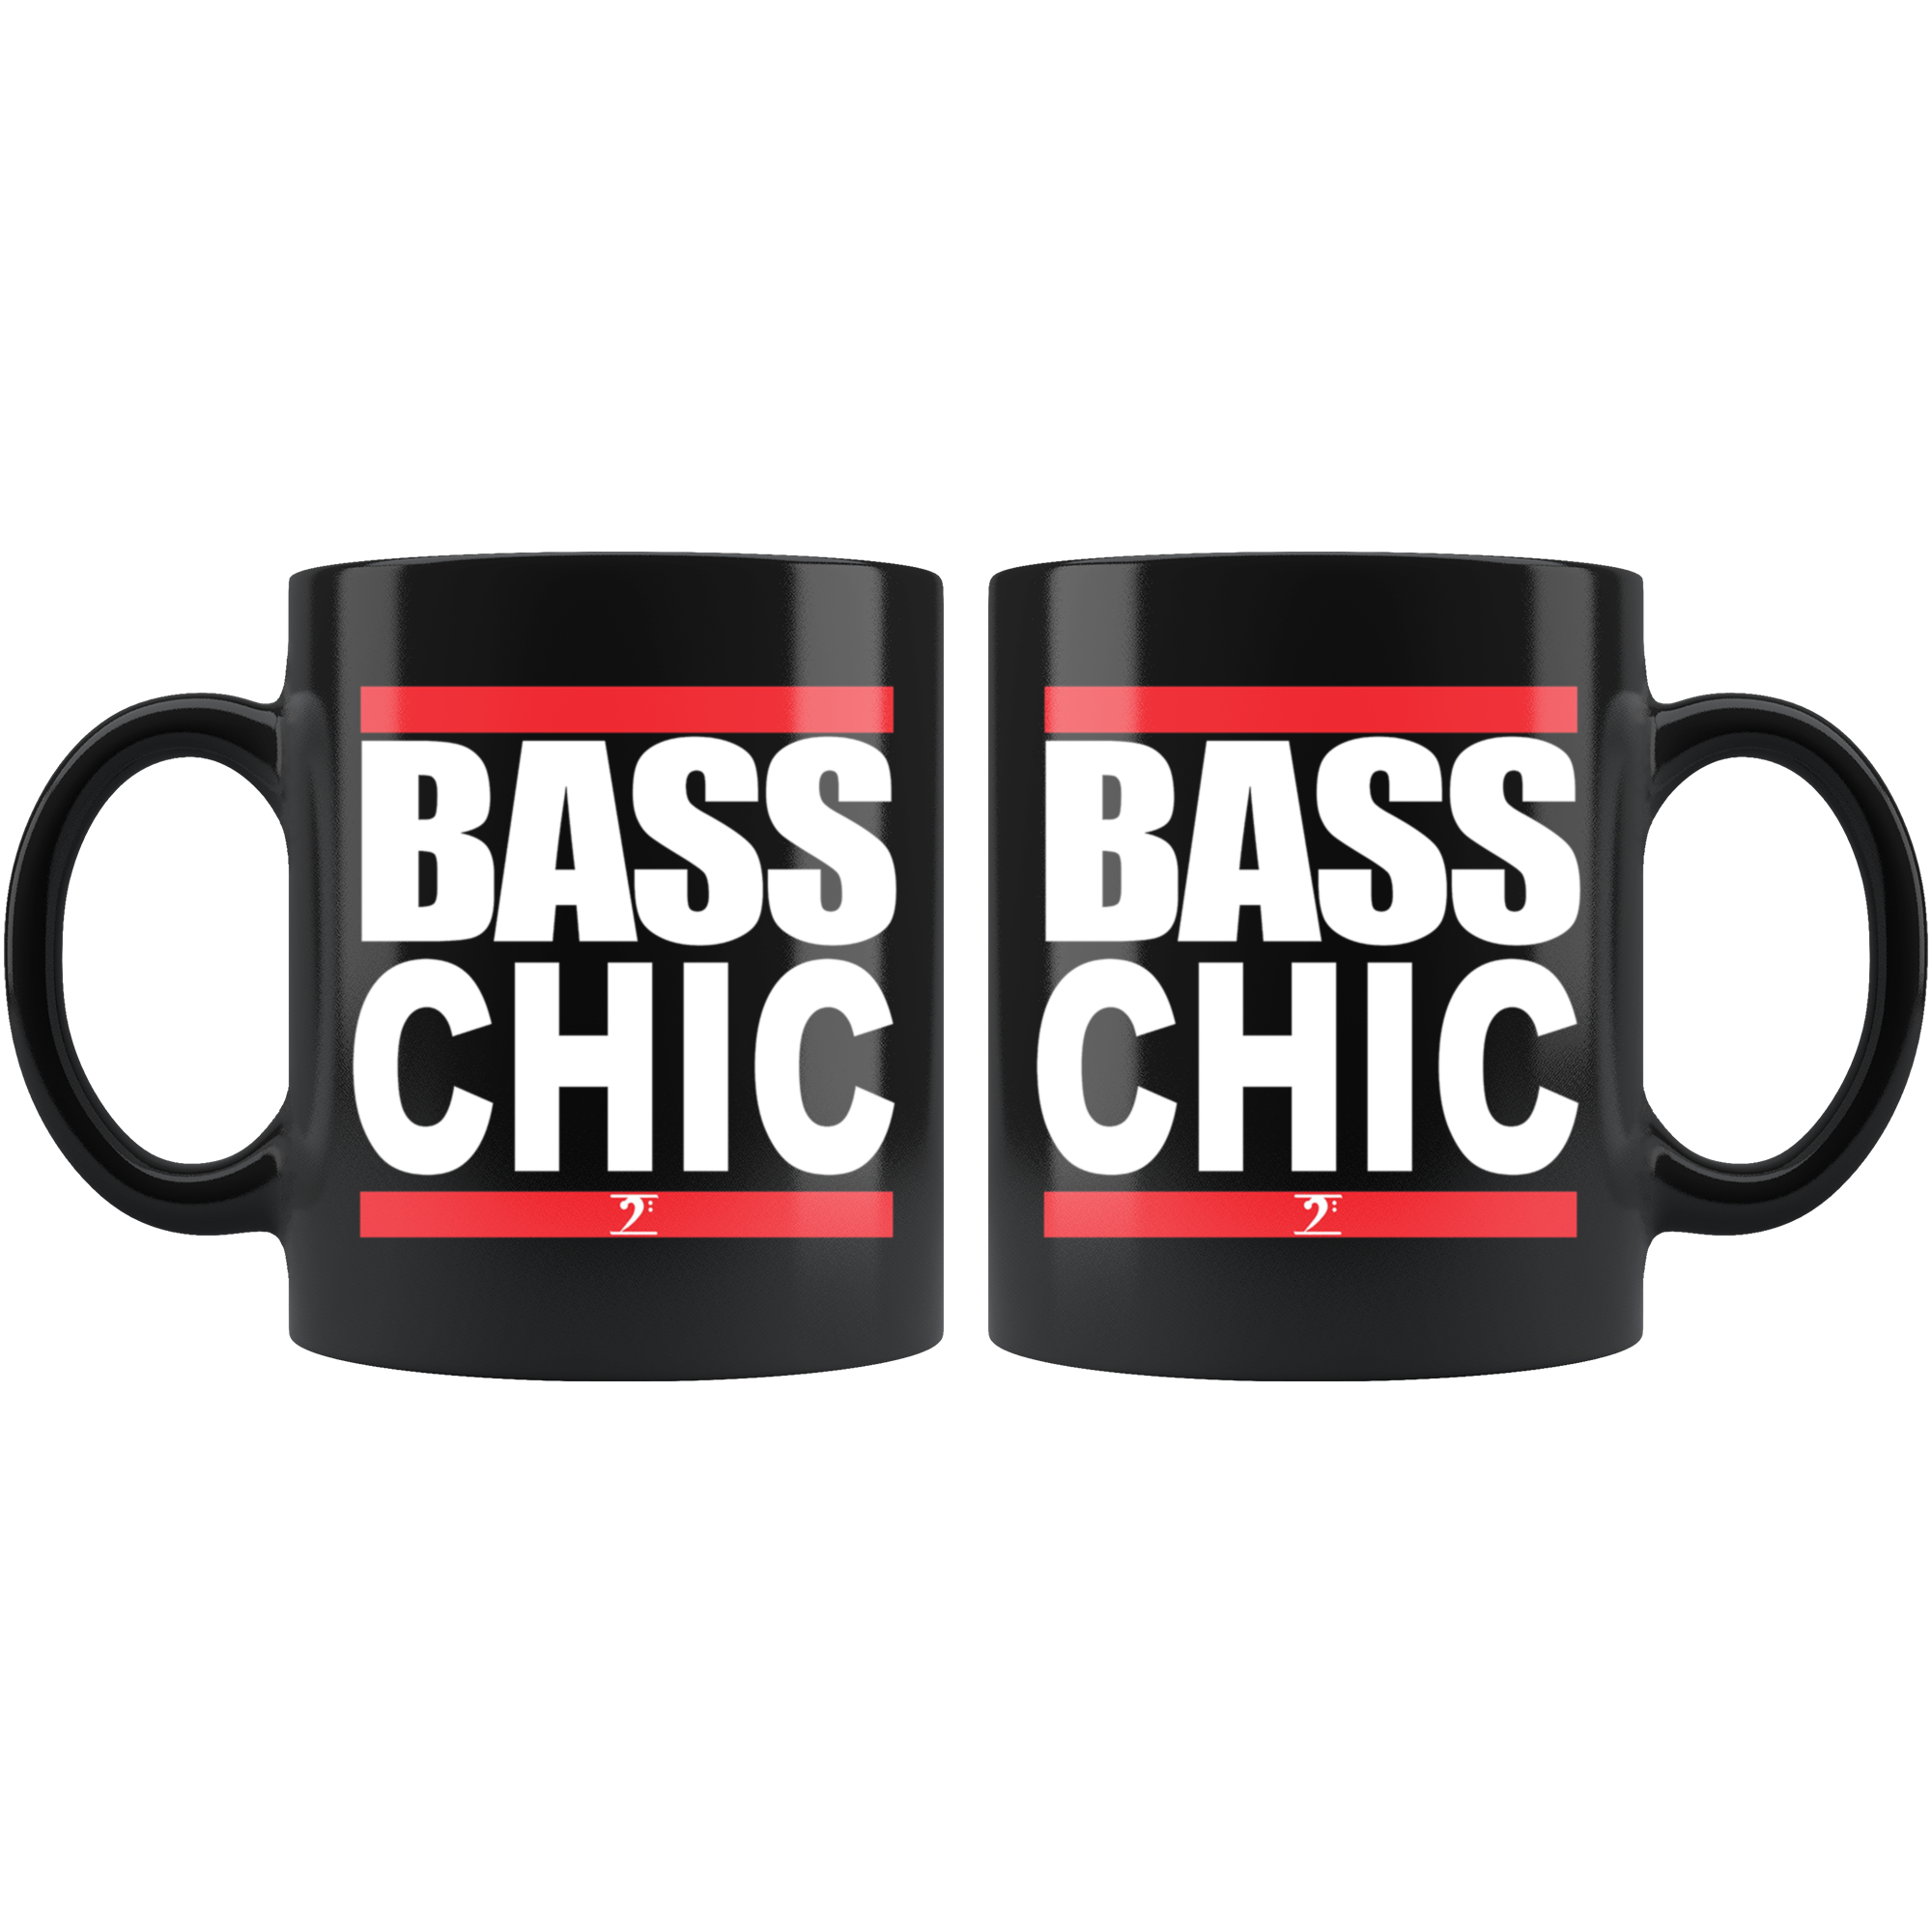 BASS CHIC Mug - Lathon Bass Wear